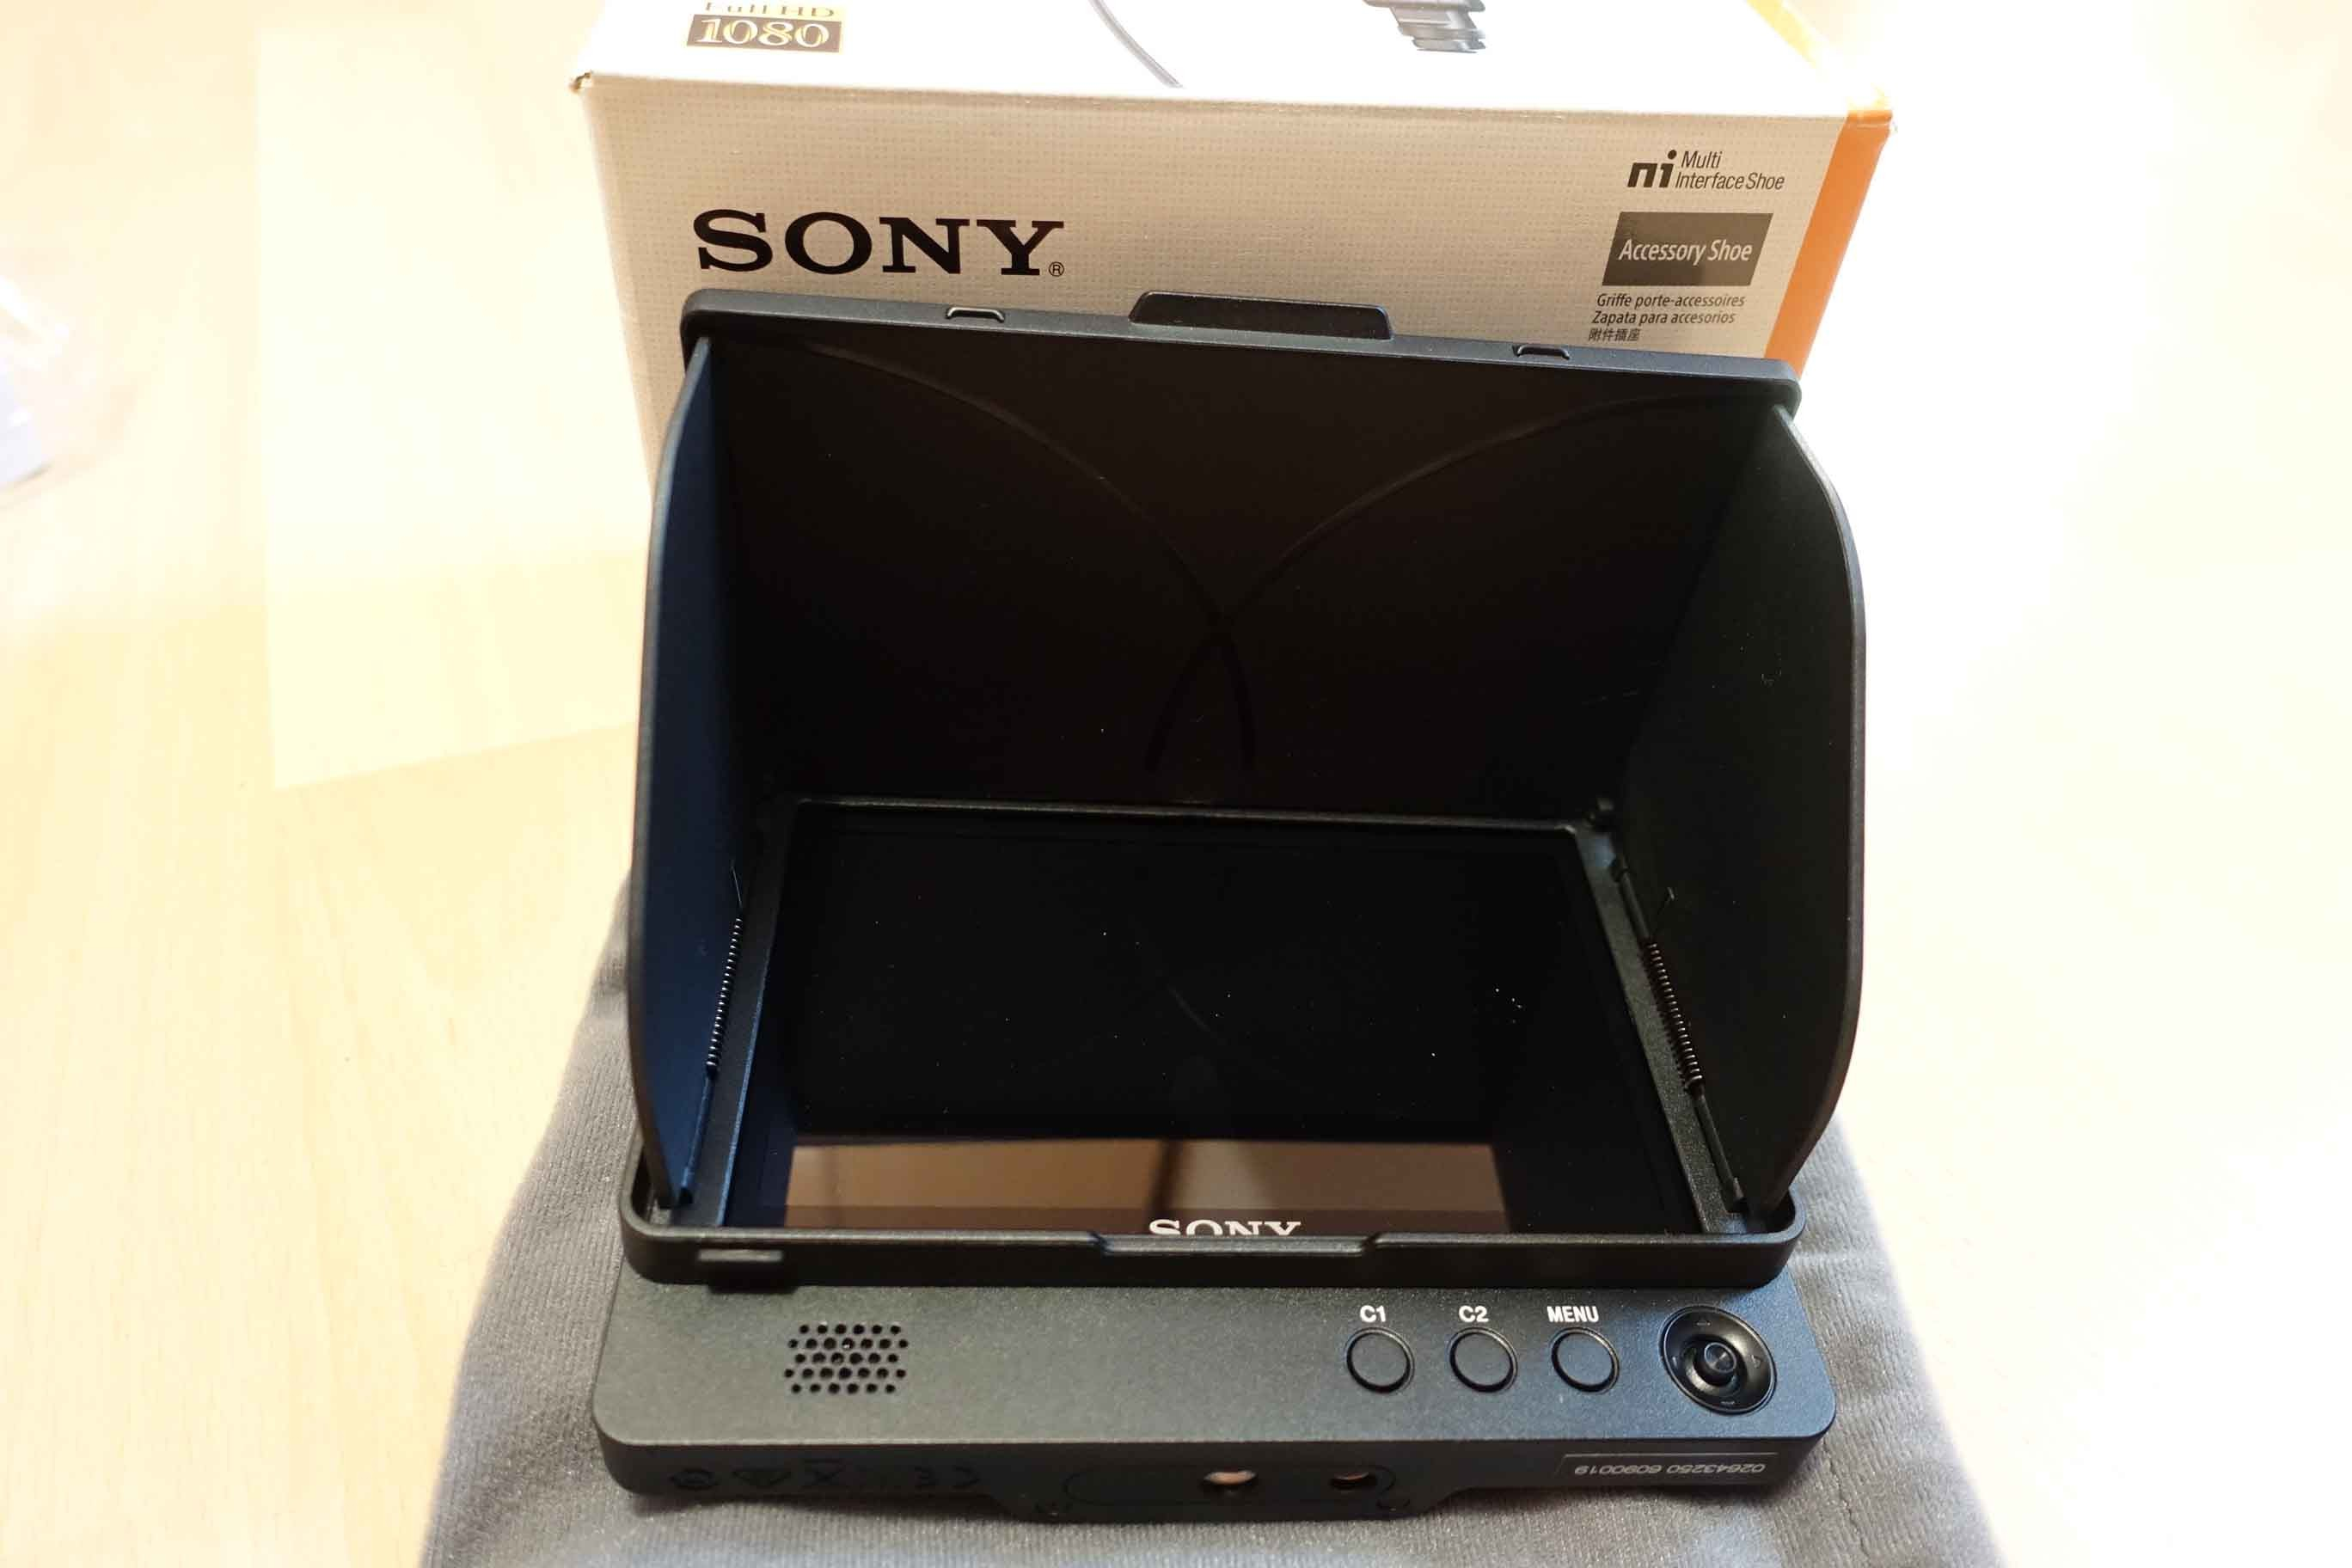 Annonce occasions ecran lcd sony clm fhd5 le repaire for Ecran photo sony